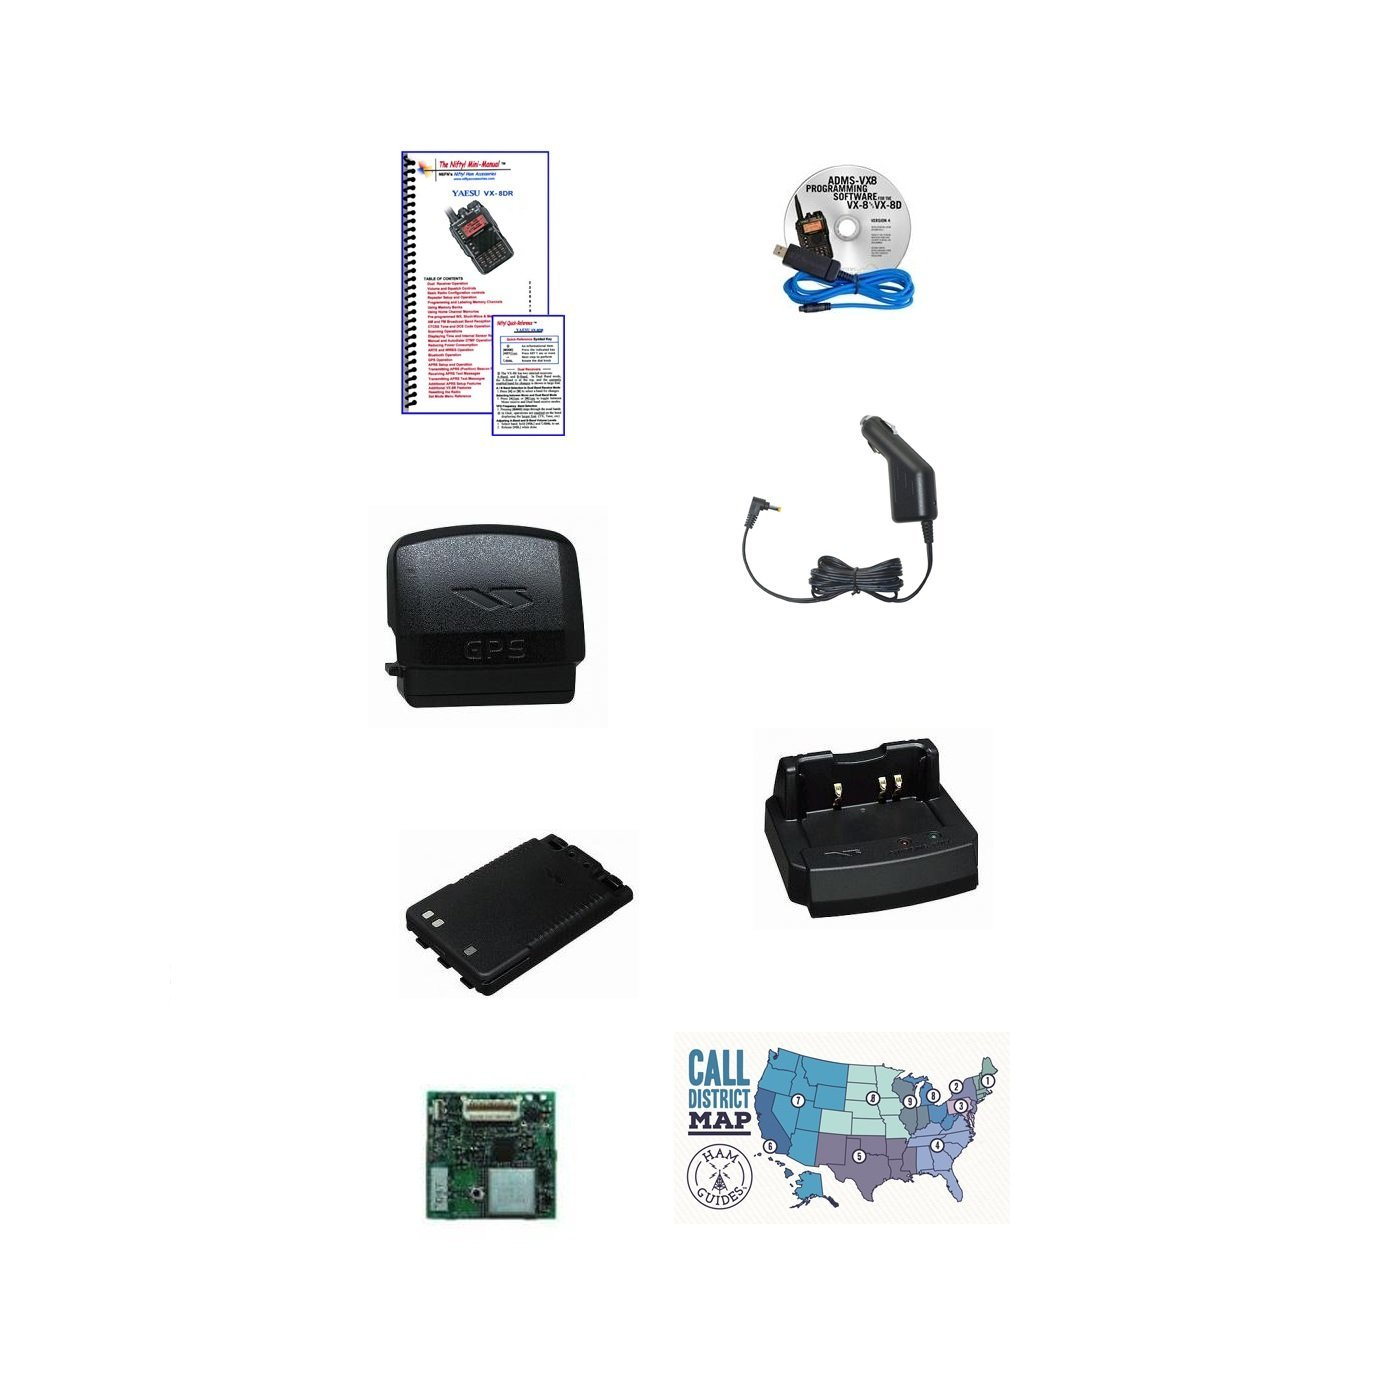 Cheap yaesu 2 find yaesu 2 deals on line at alibaba get quotations yaesu vx 8dr accessory pack bundle programming softwarecable nifty guide gumiabroncs Gallery